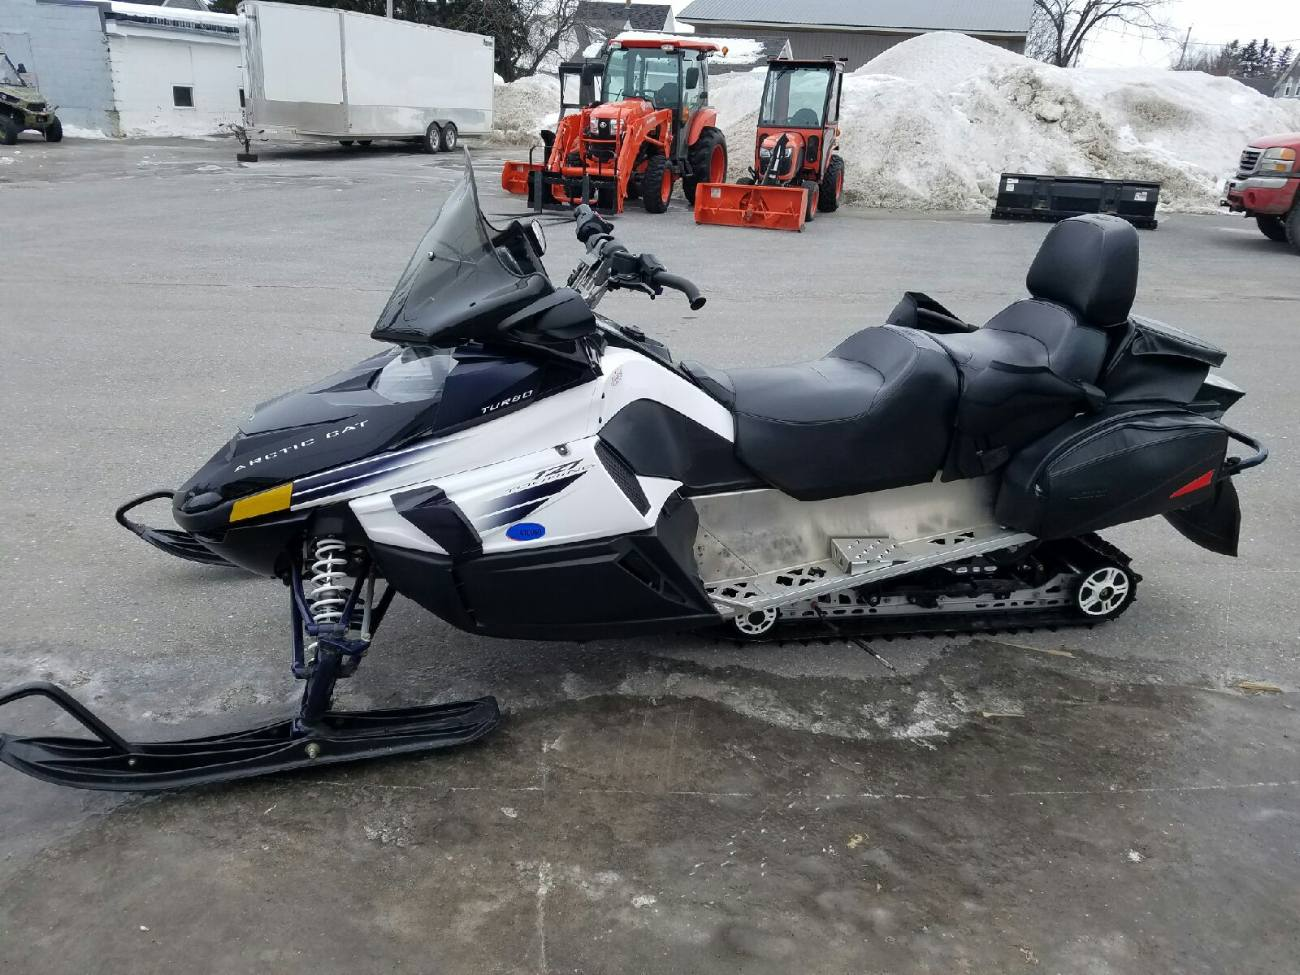 2010 Arctic Cat TZ1 Touring LXR Turbo